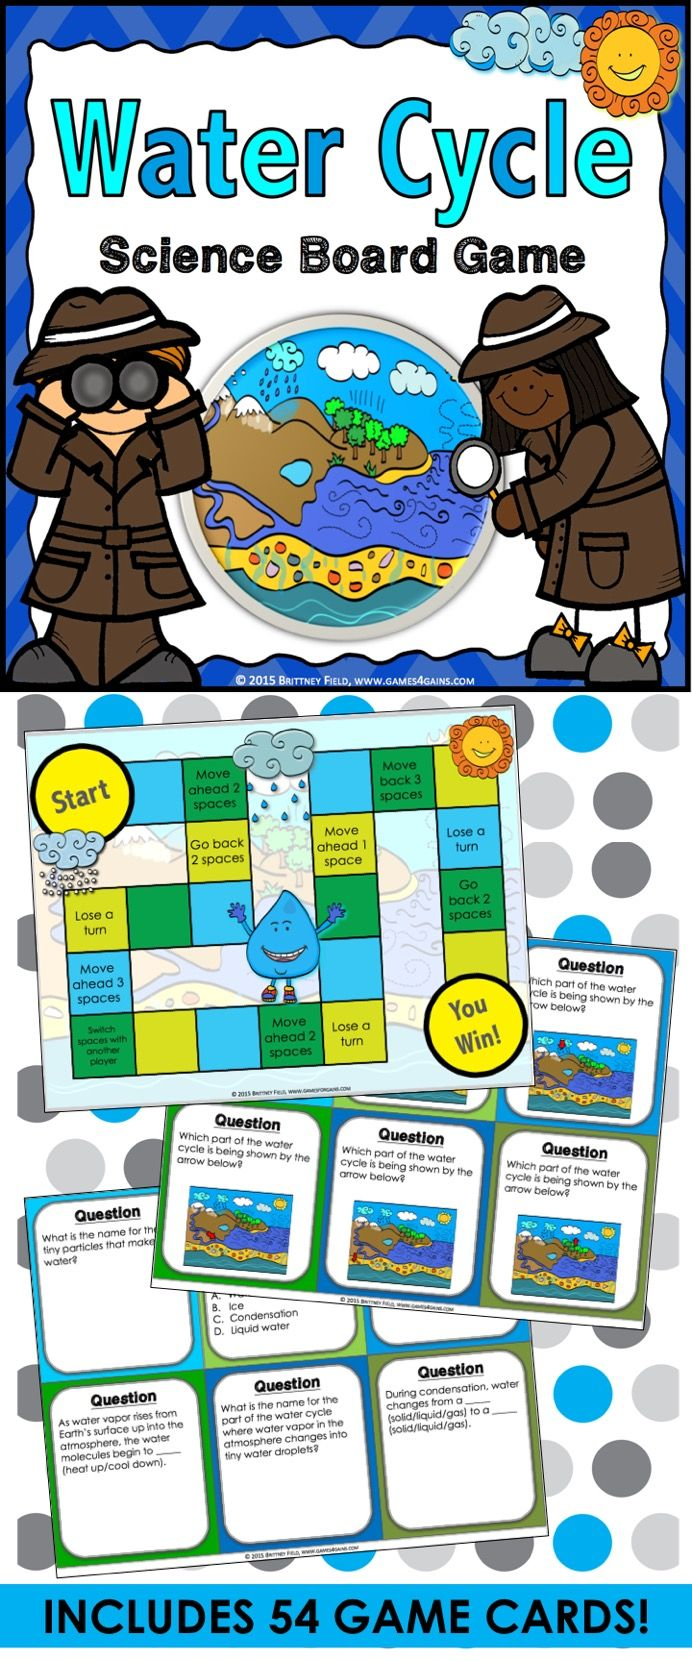 Water Cycle Activity Game